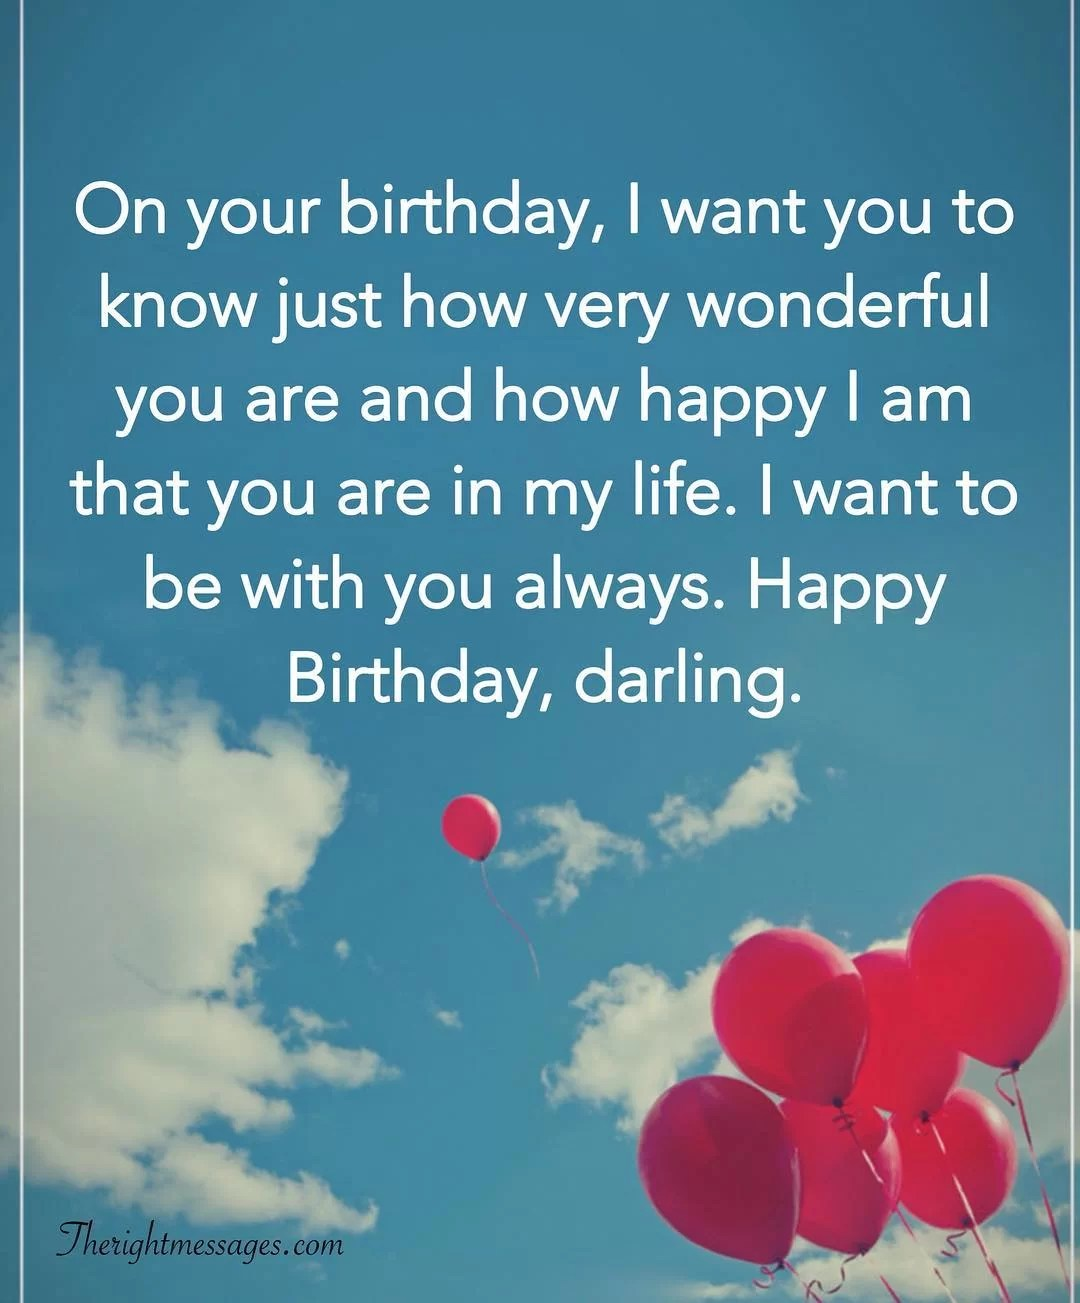 Short And Long Romantic Birthday Wishes For Boyfriend The Right Messages